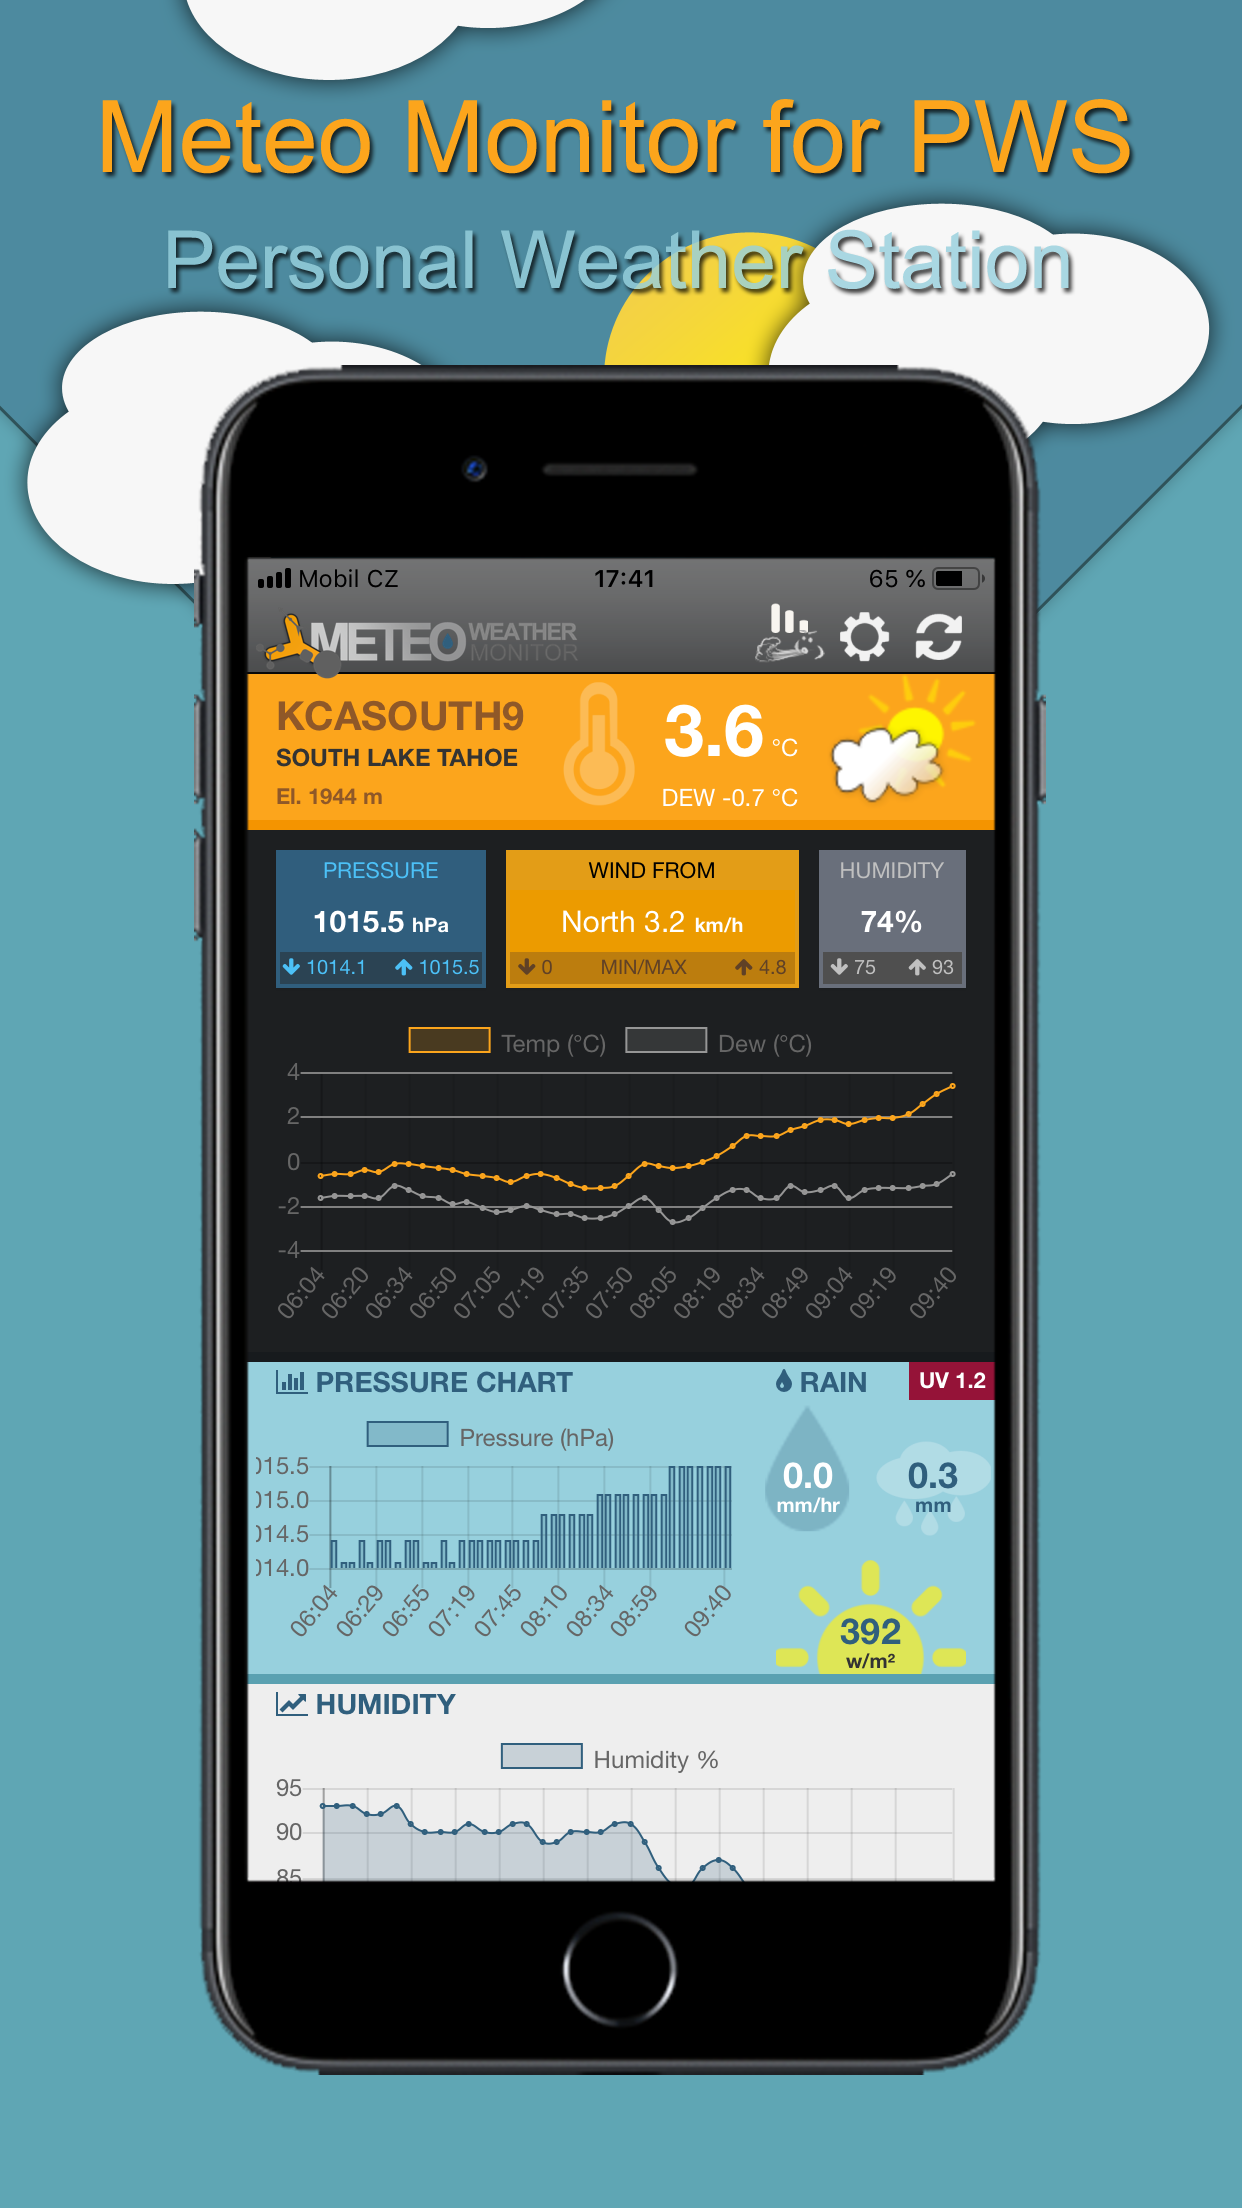 Personal Weather Station Meteo Monitor